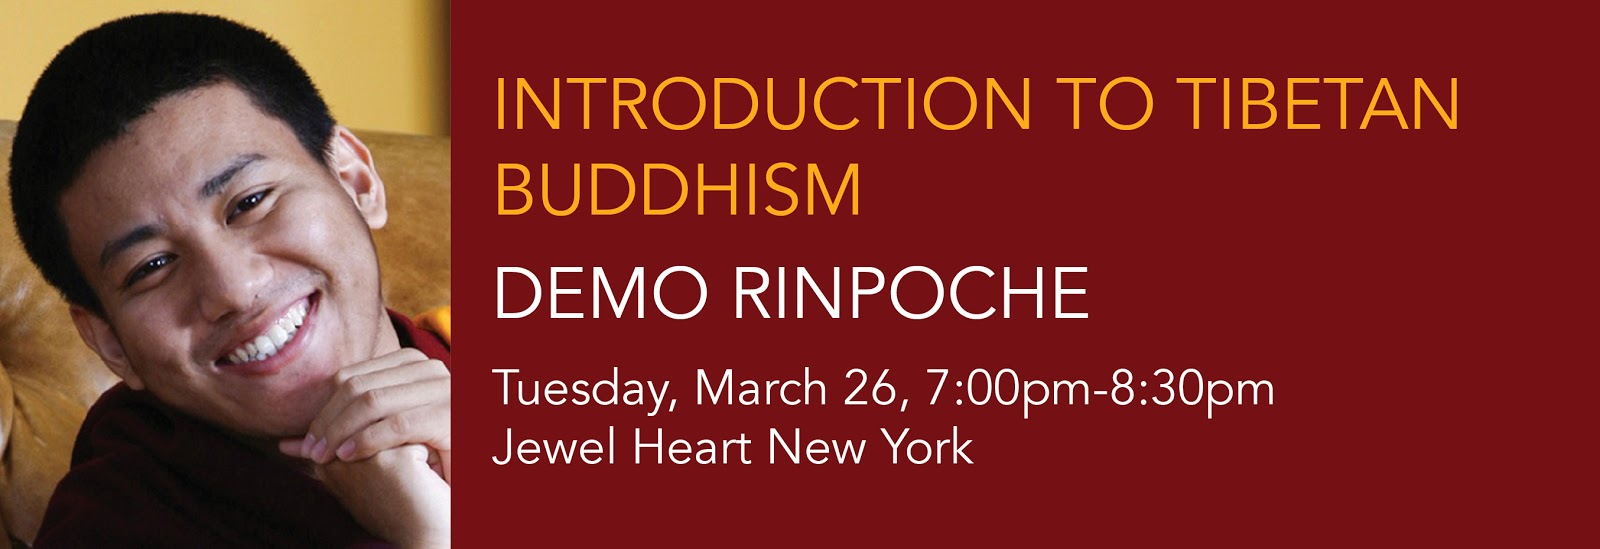 Introduction To Tibetan Buddhism - Demo Rinpoche